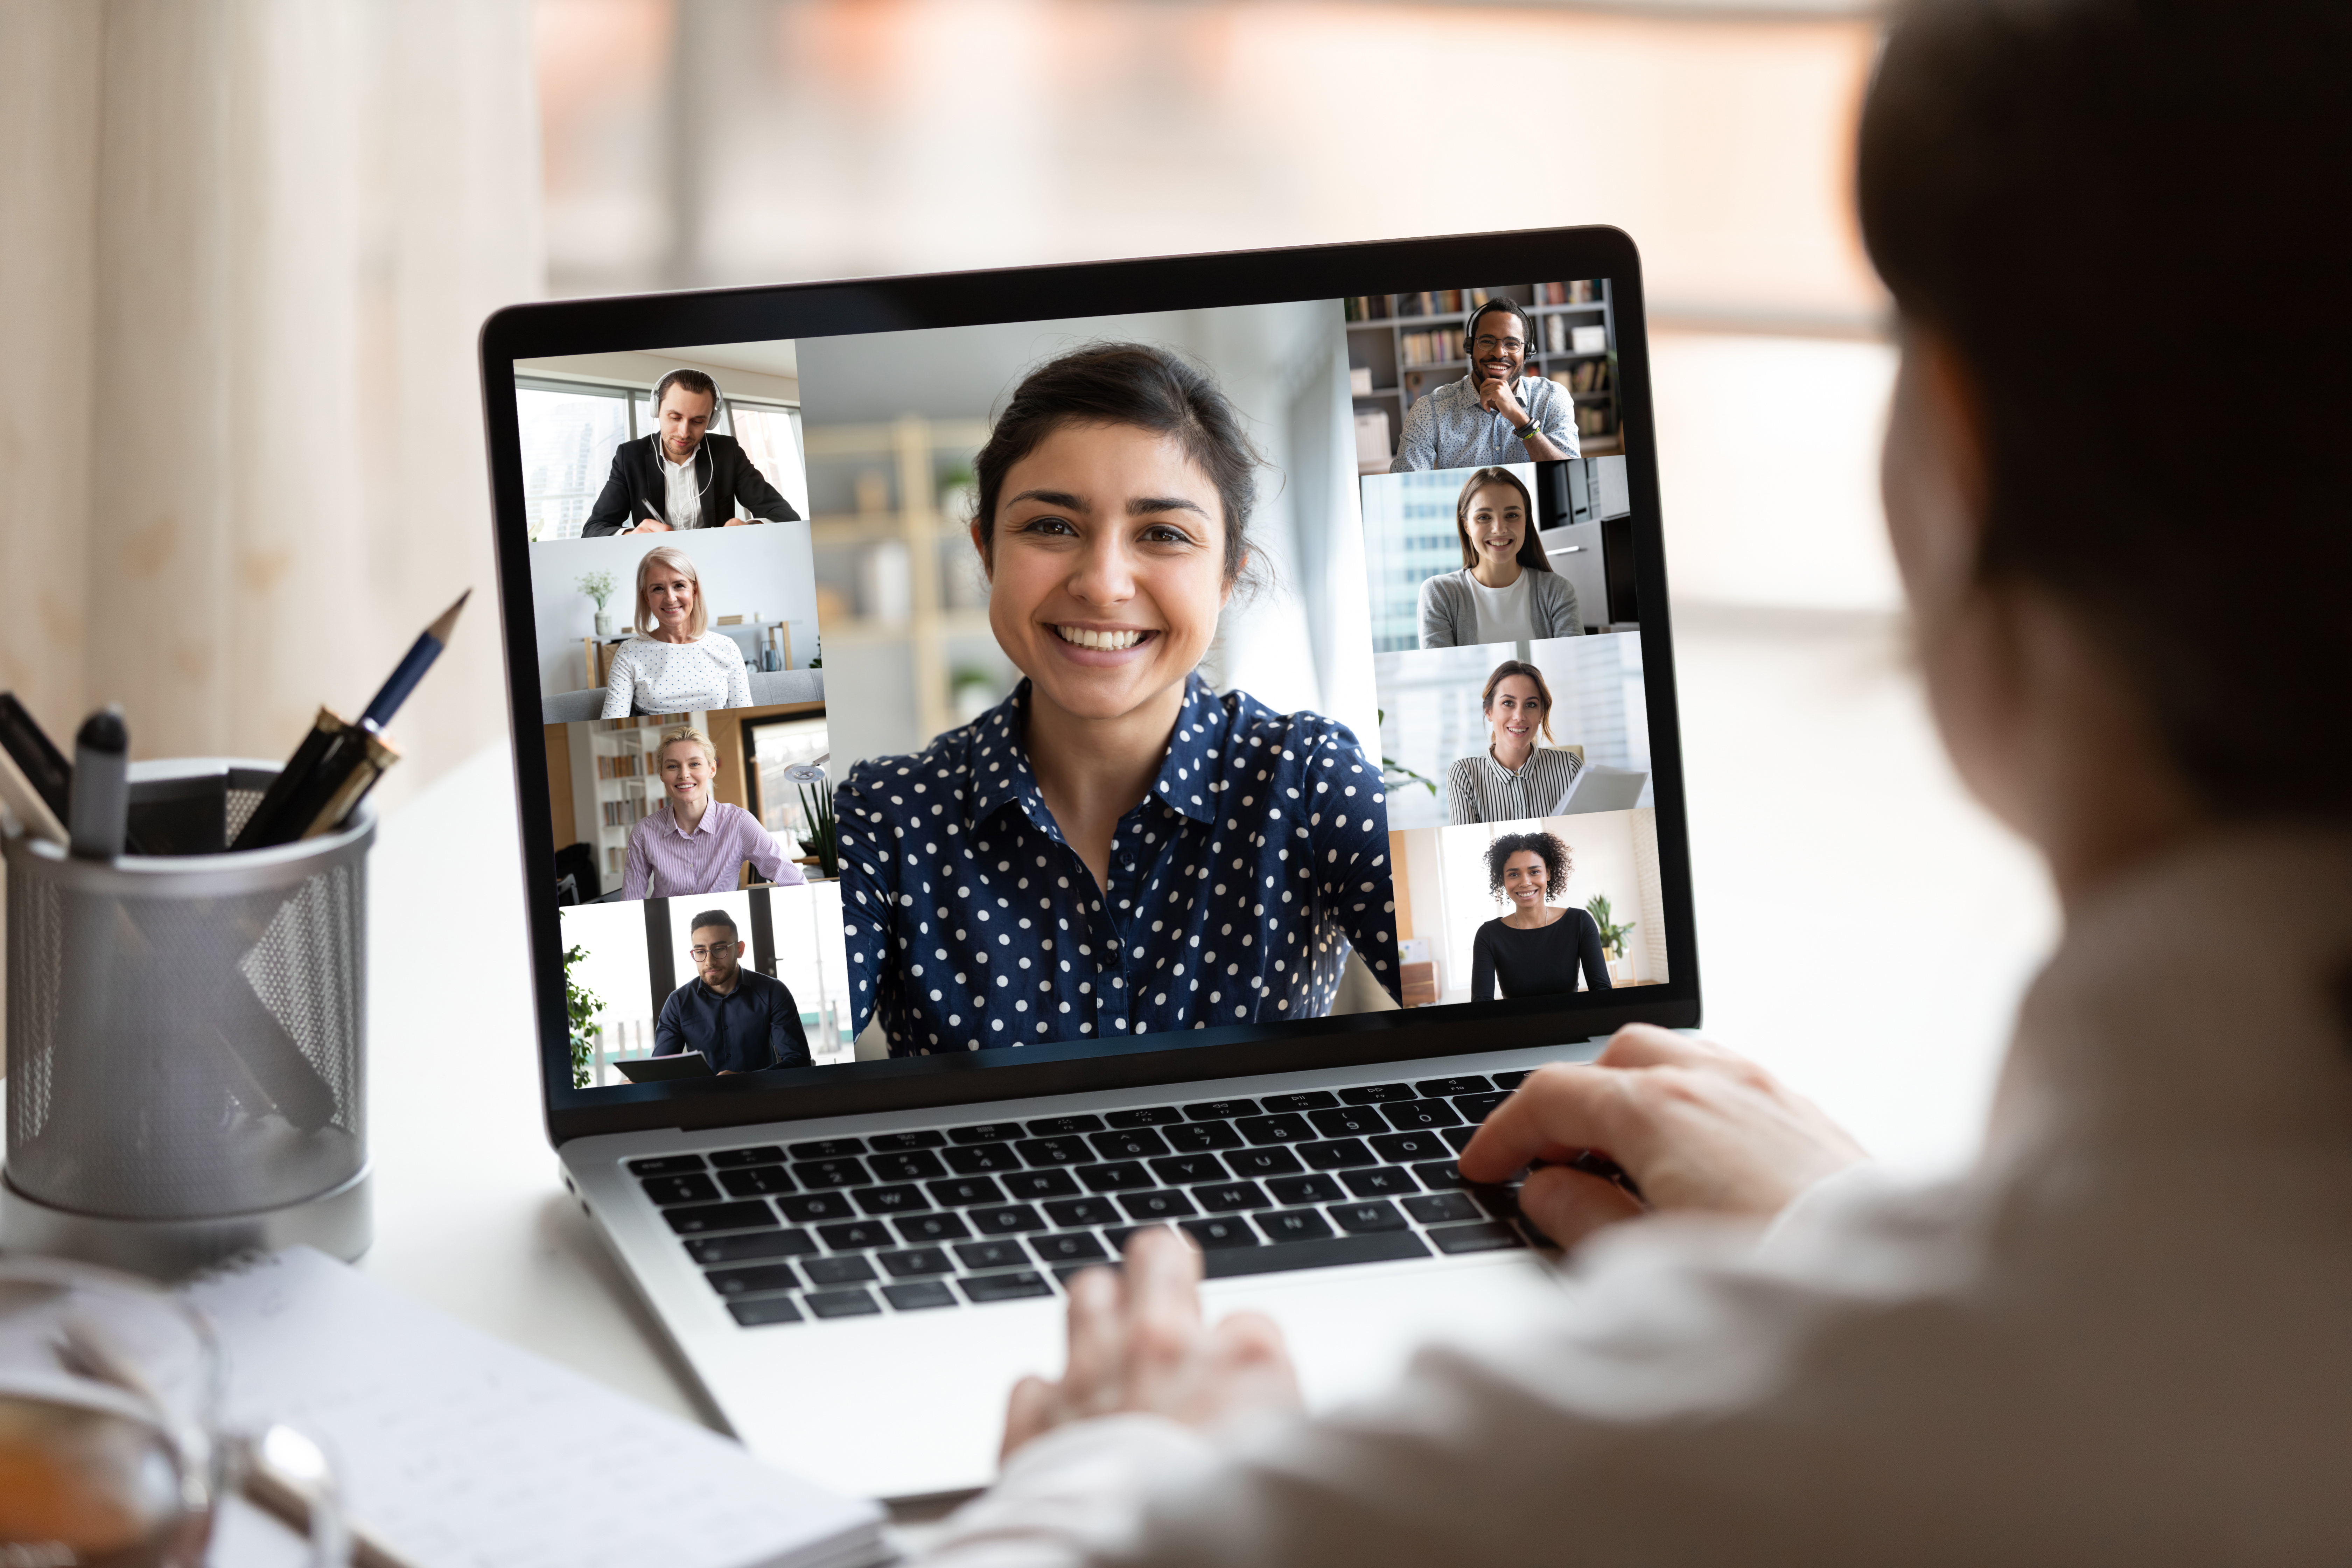 Person viewing an online group meeting/webinar with other individuals on screen.